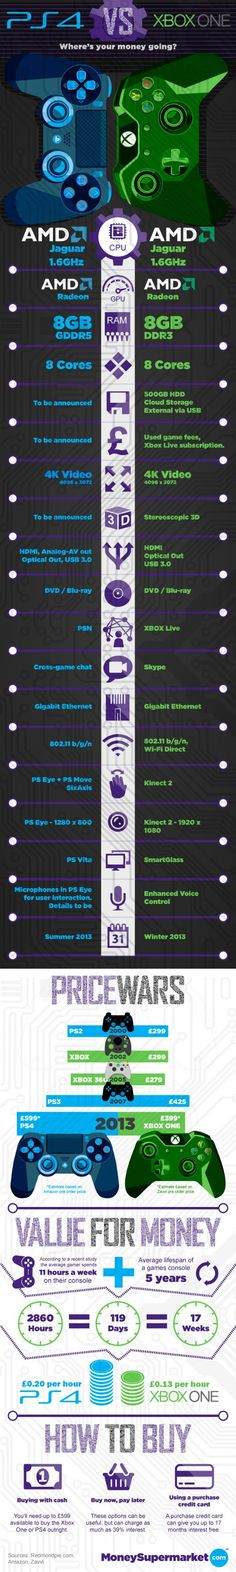 XBOX One Vs PS4 [Infographic] | TechnoGrafy The first shots have been fired in the PS4 vs Xbox One console war now that both Sony and Microsoft have announced their next-generation systems. While Sony confirmed the PlayStation 4 specs back in February, is waiting until E3 2013 to announce what the PS4 looks like.